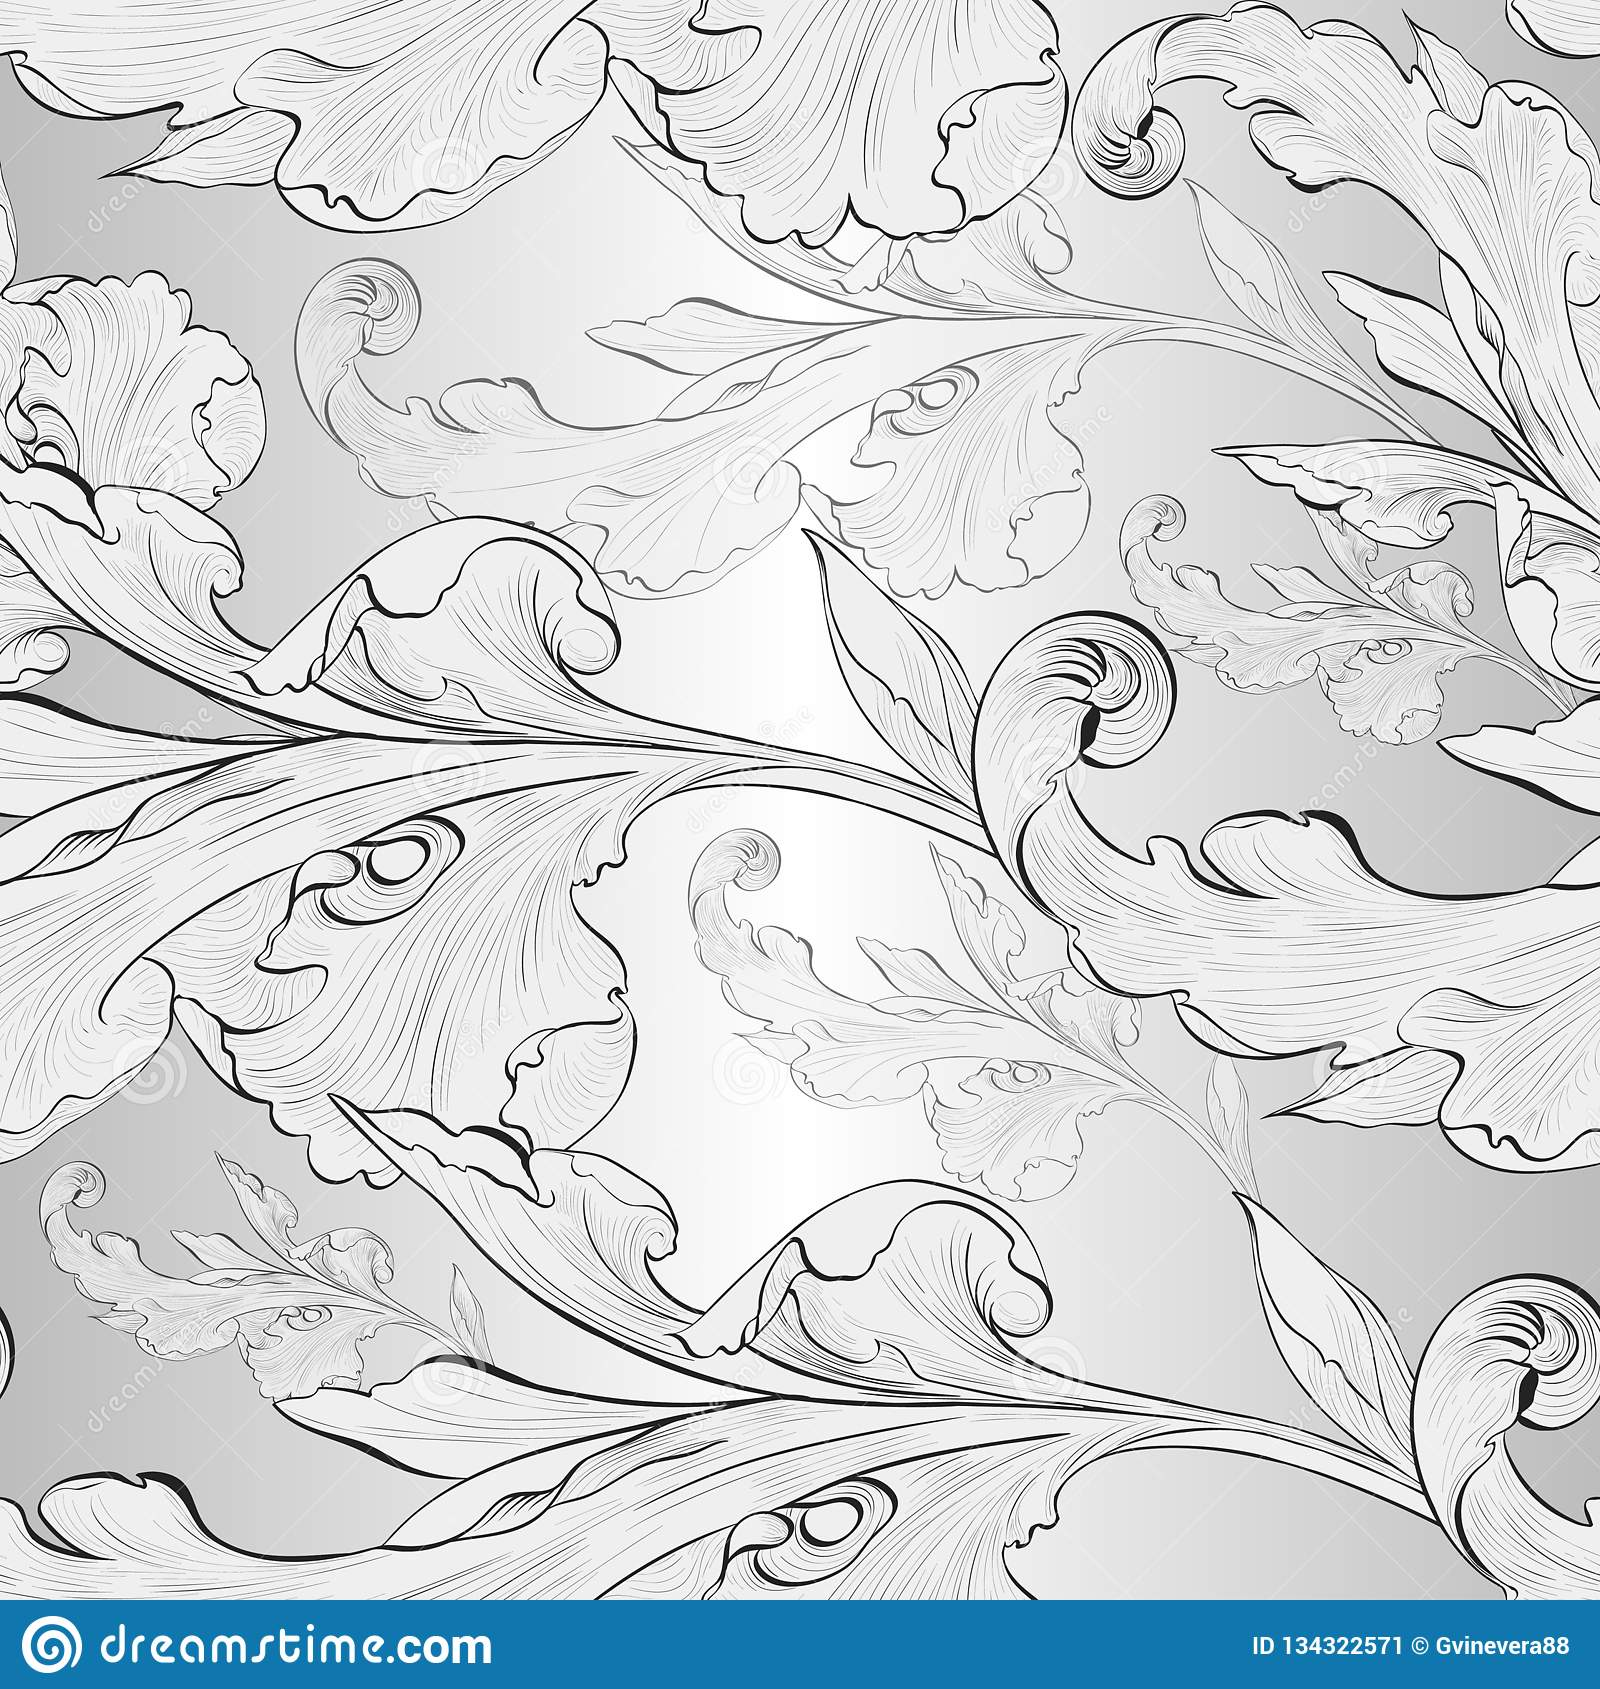 Vector. Seamless background. A branch is a plant element. Wallpaper. Decorative composition. Use printed materials, signs, posters